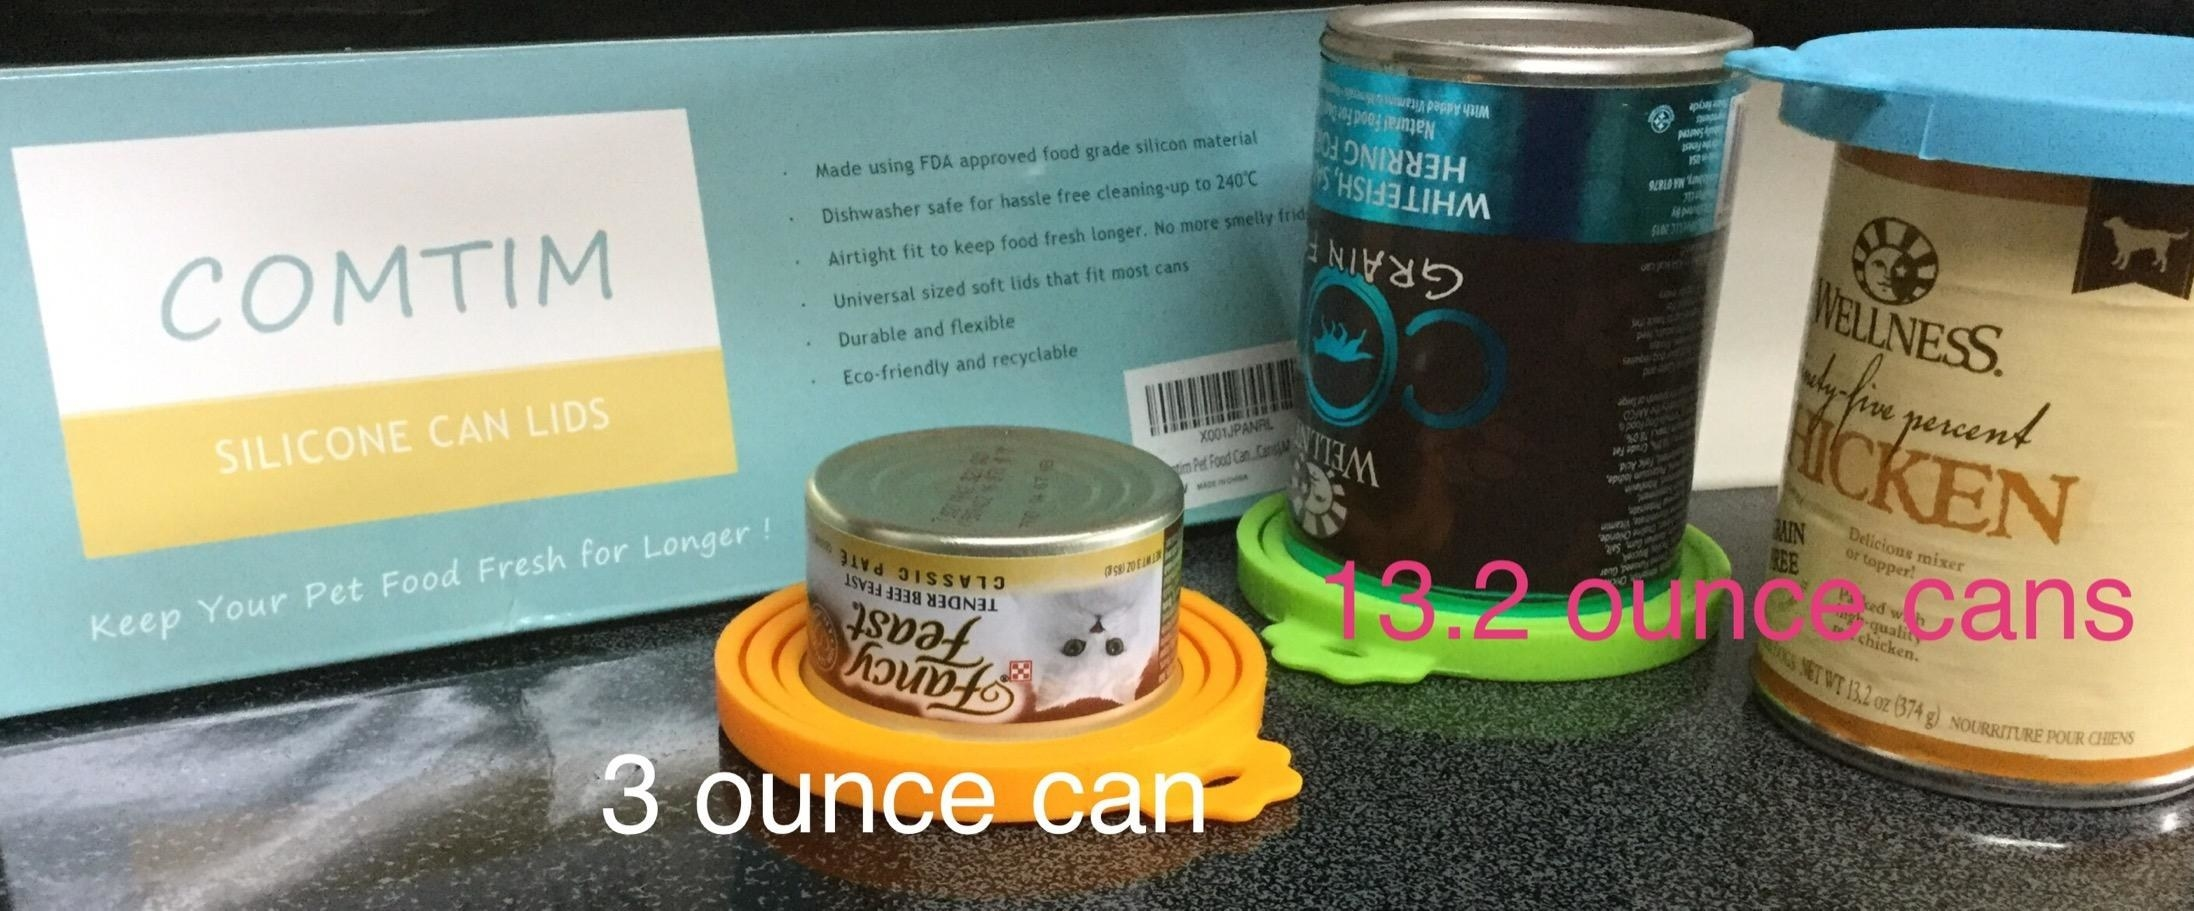 The silicone covers on a small 3-ounce can of cat food and two large 13.2-ounce cans of dog food